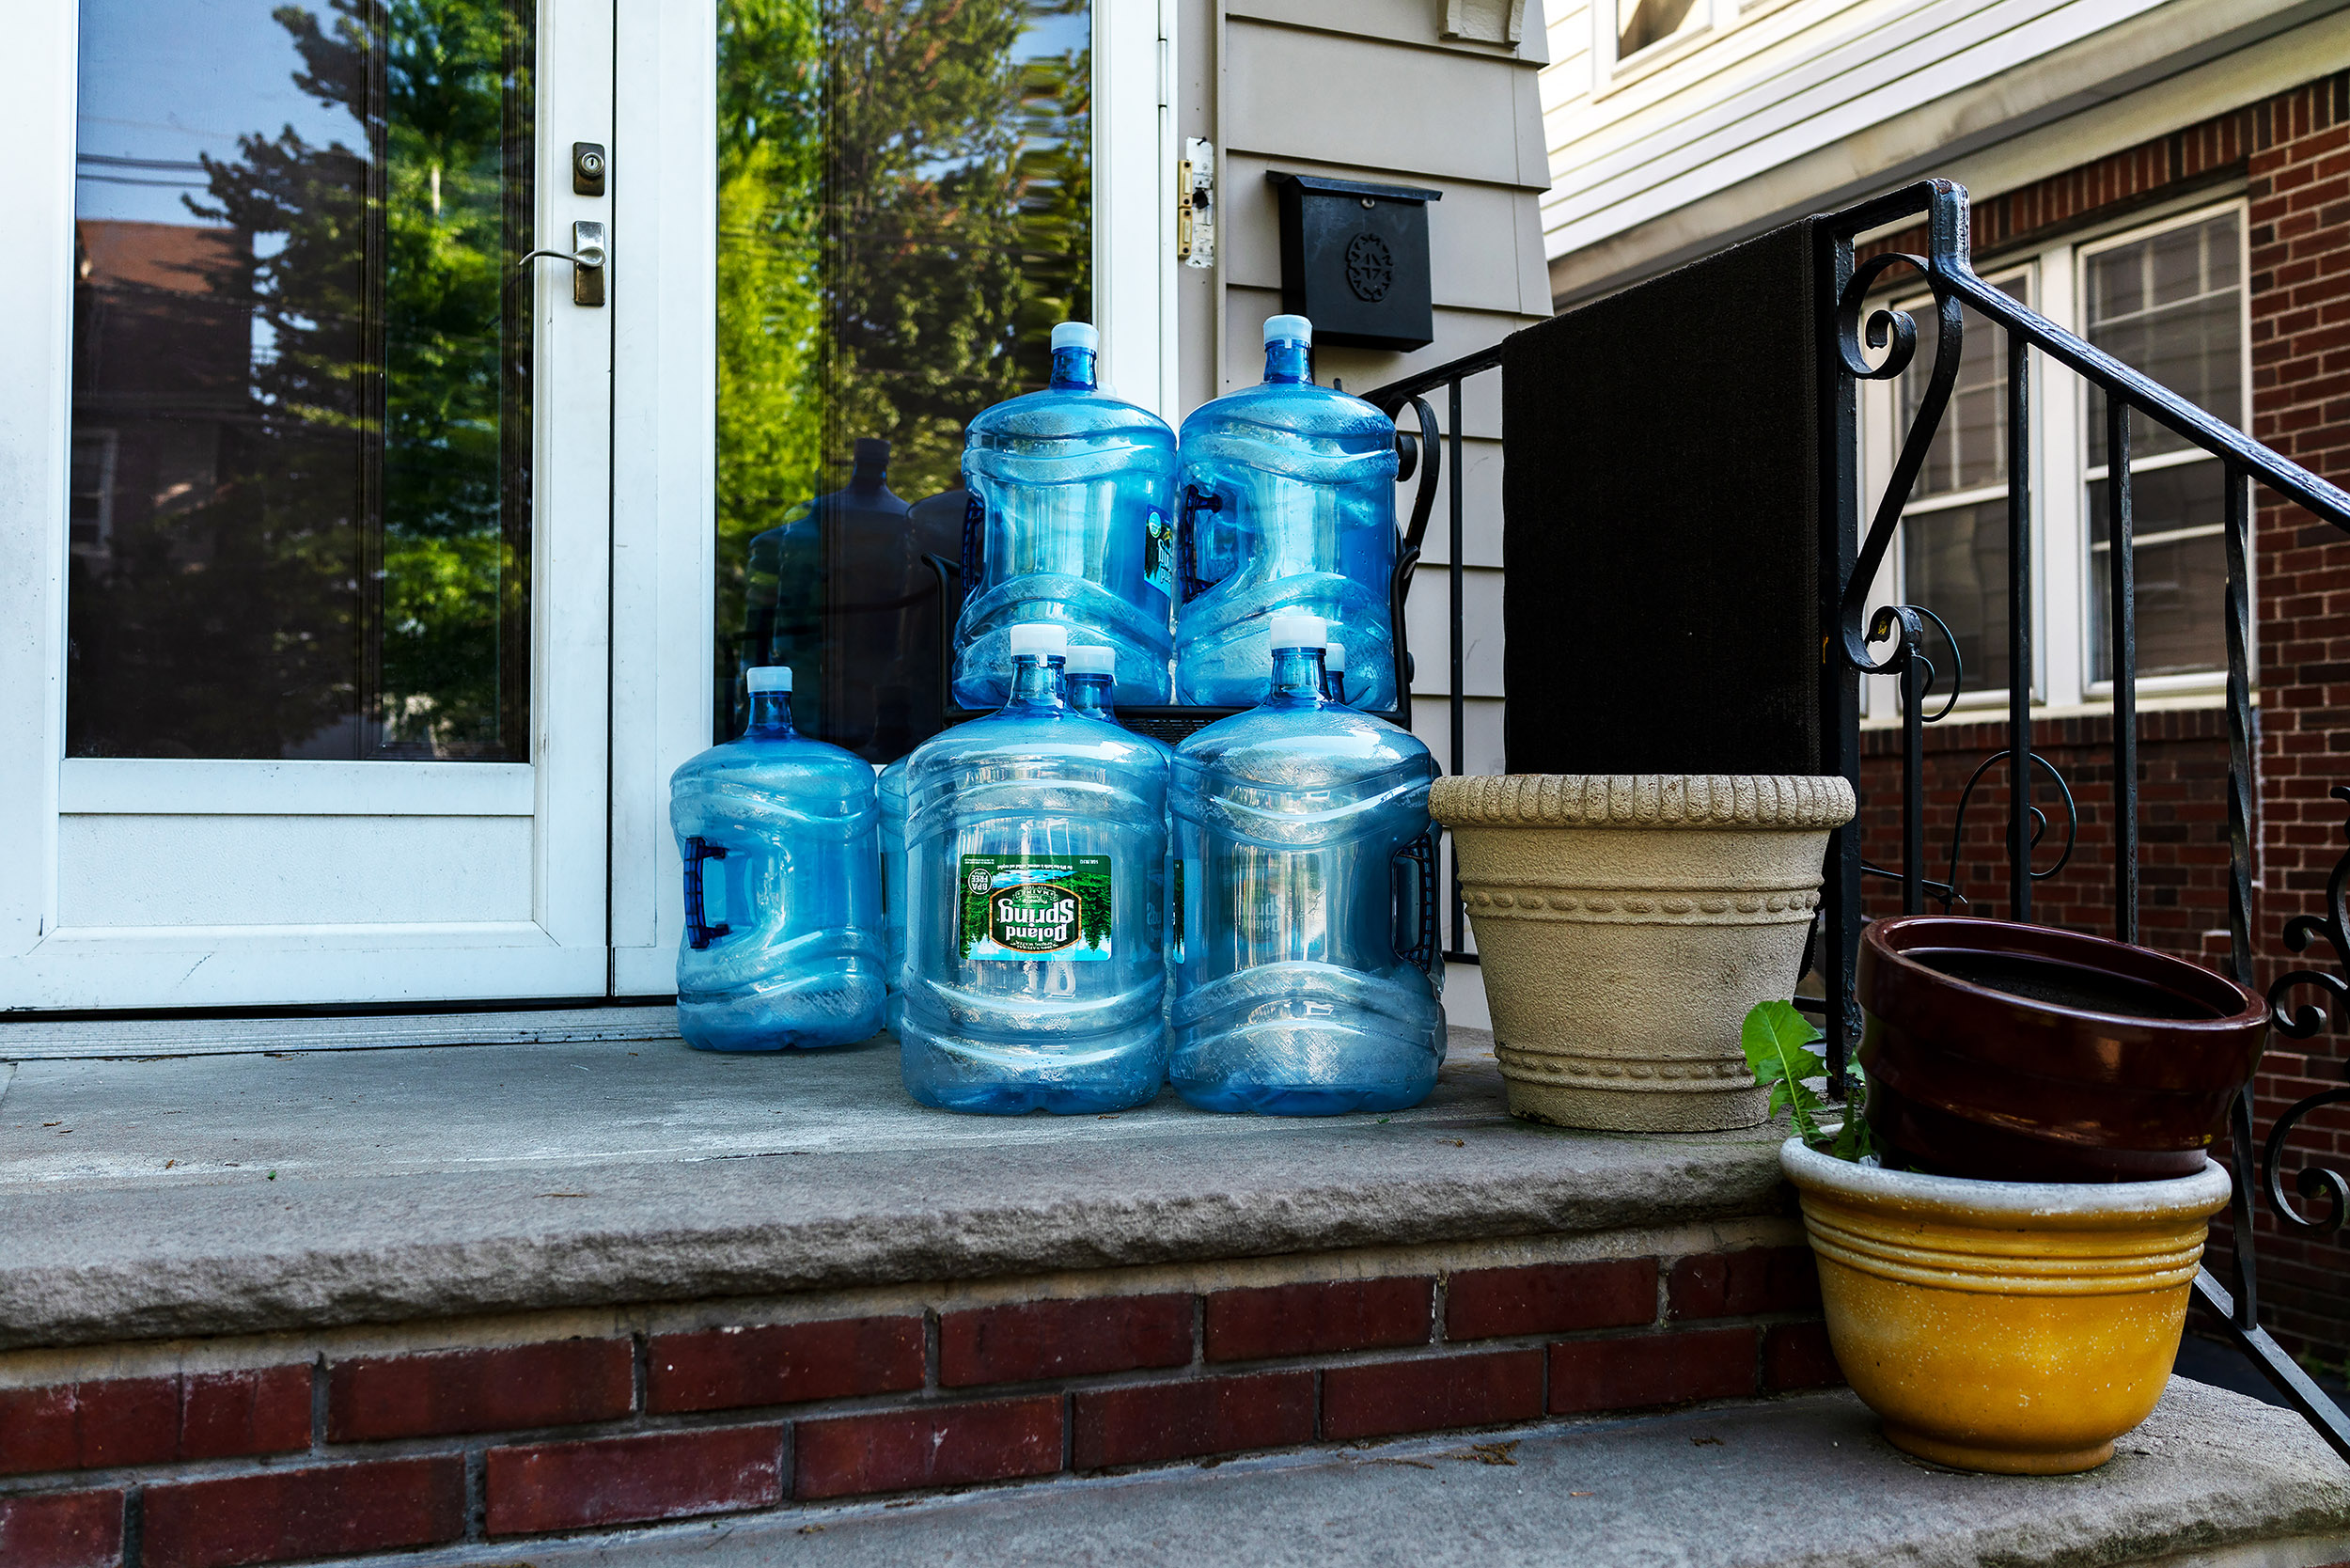 Water bottles awaiting pickup on the porch of a Newark home.